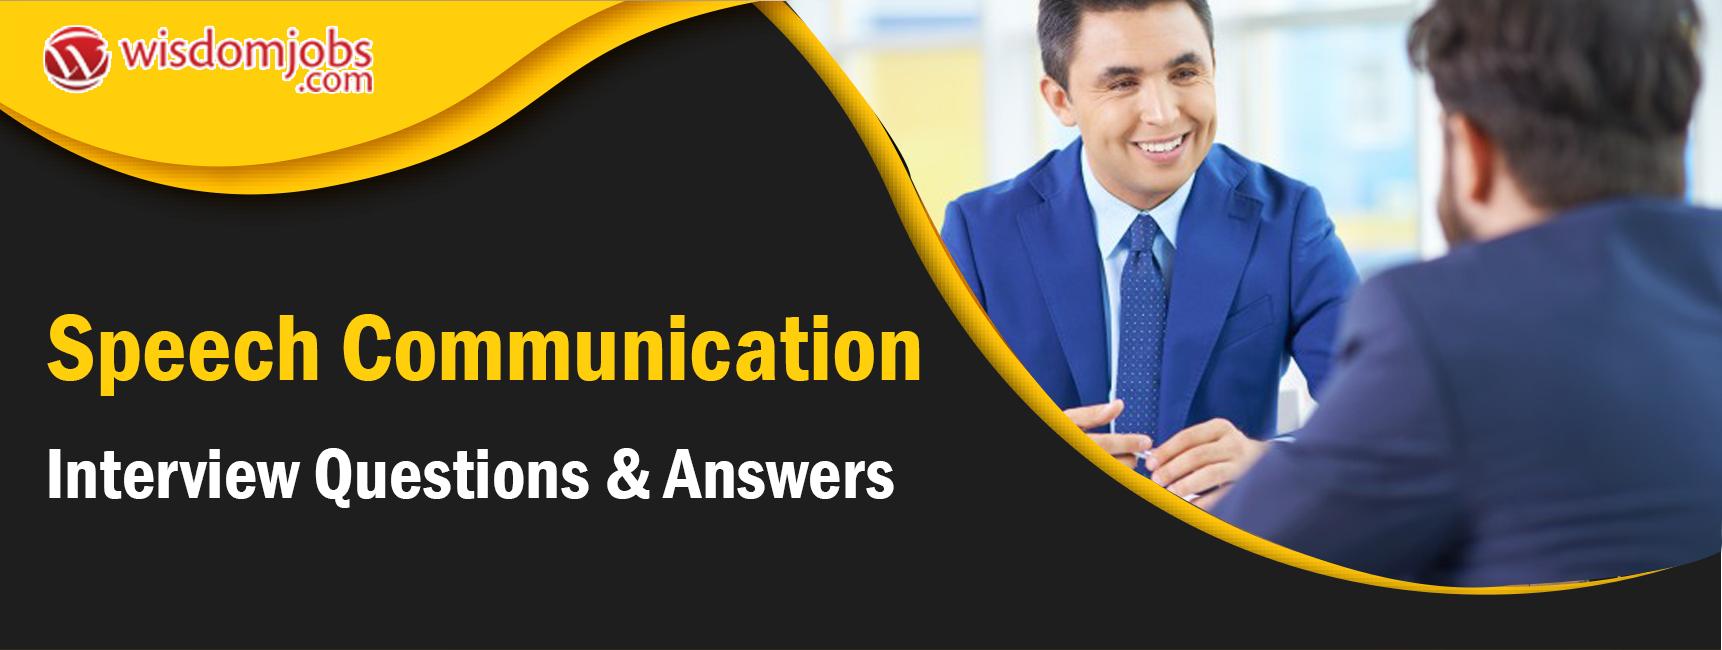 Speech Communication Interview Questions & Answers